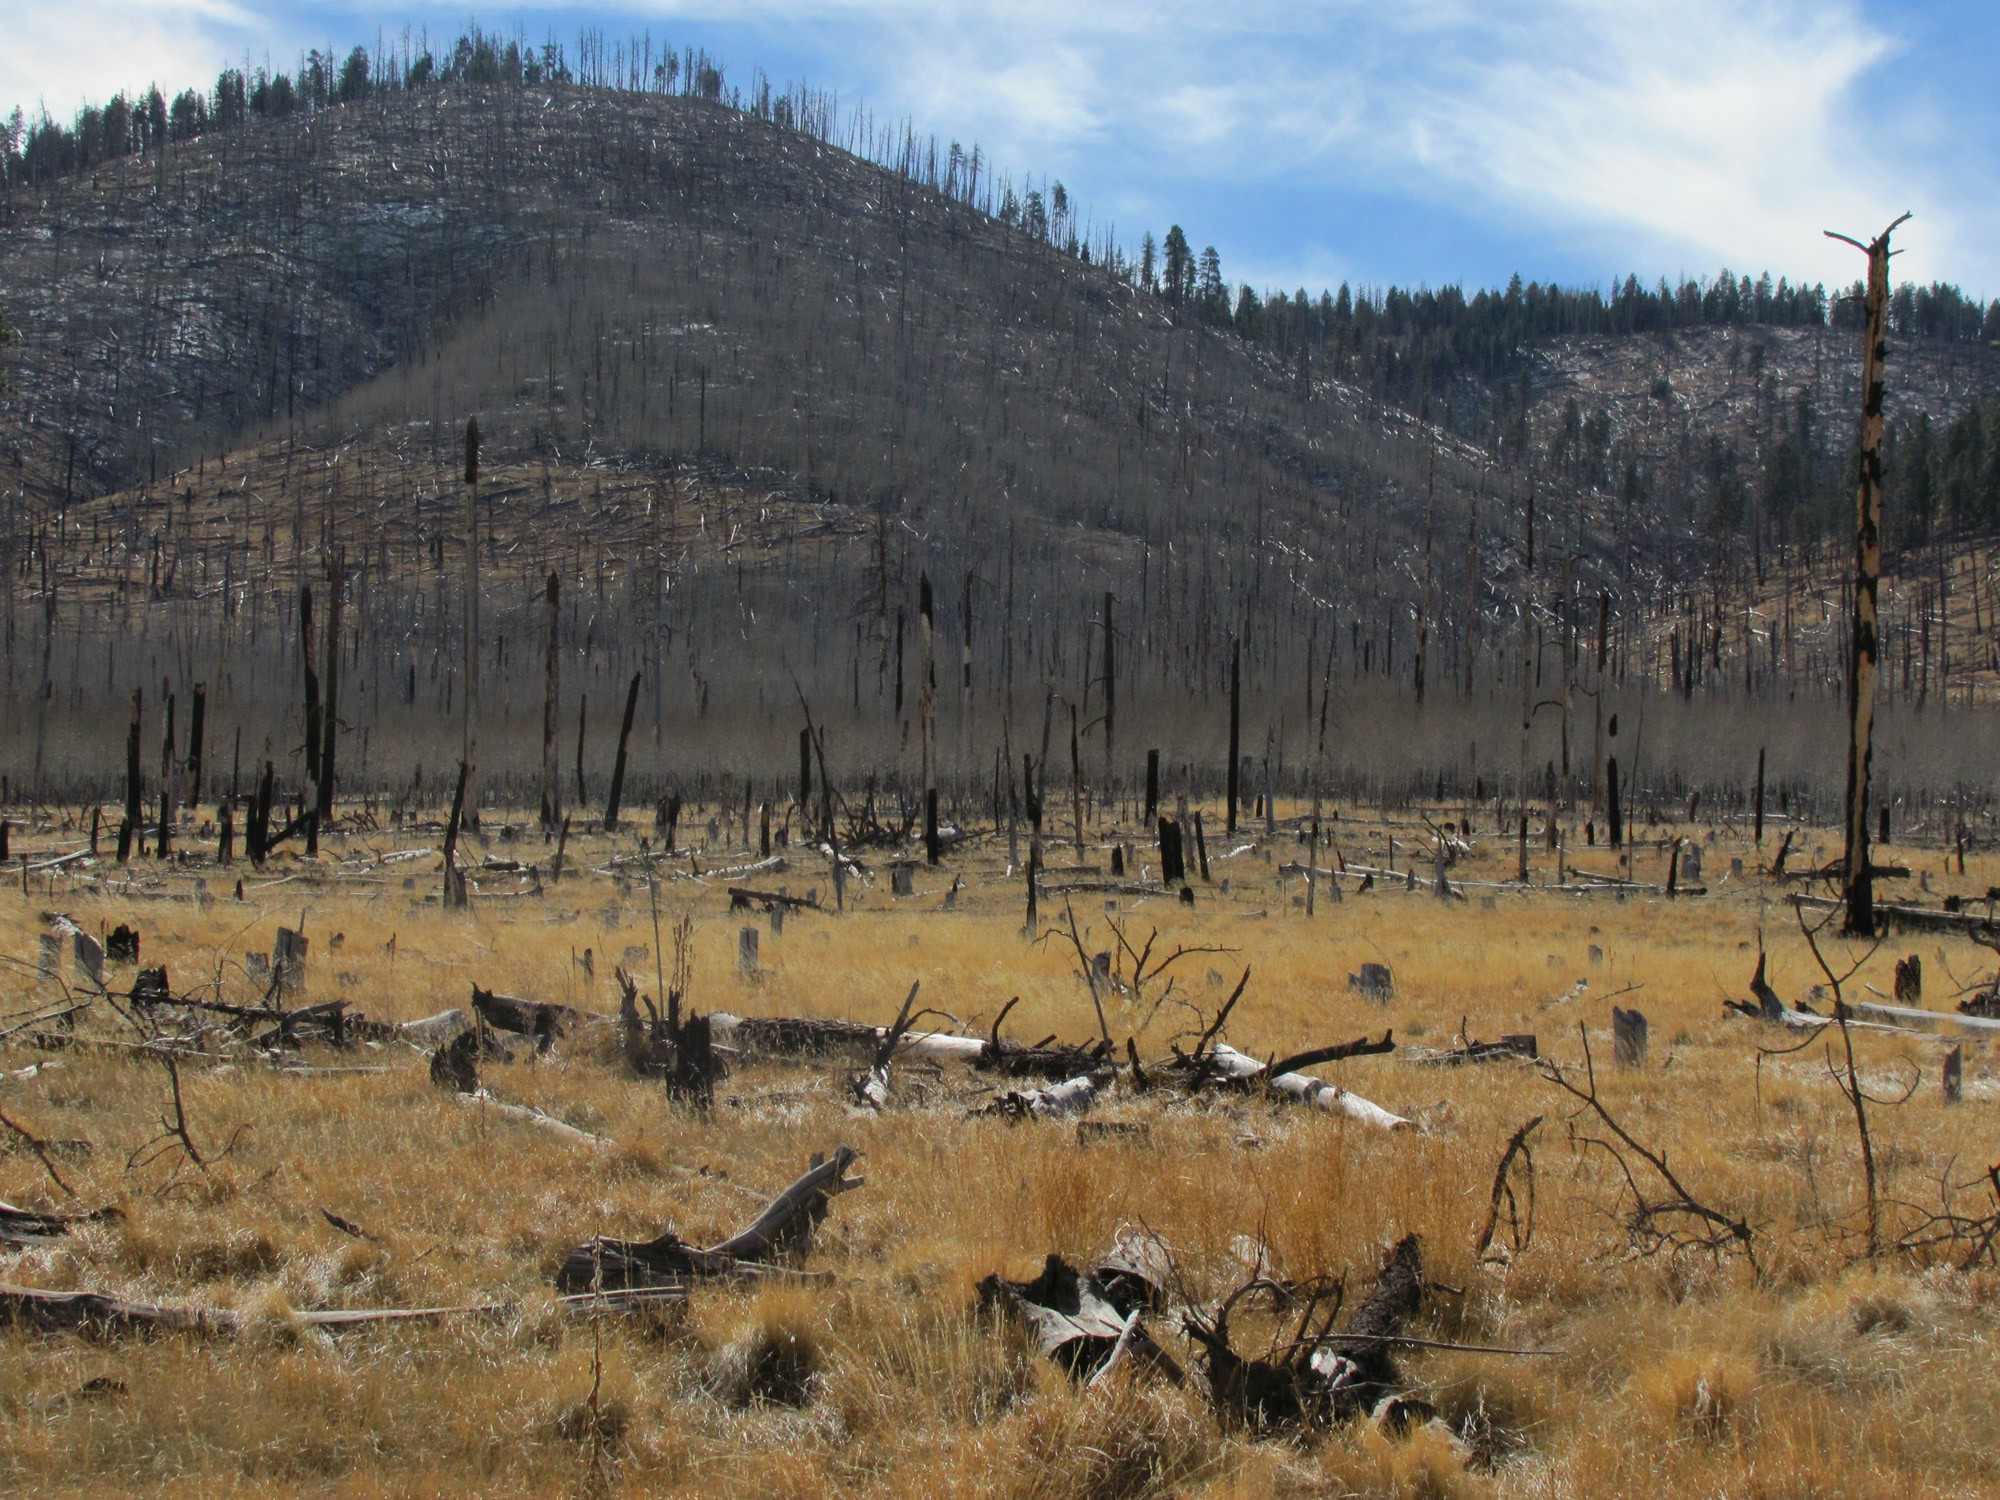 Researchers say this area of the Coconino National Forest, which burned in 1996, is decades away from returning to its native state, if it ever does. They say rising temperatures have weakened trees, raising the potential for devastating wildfires that will open the door to invasive species.